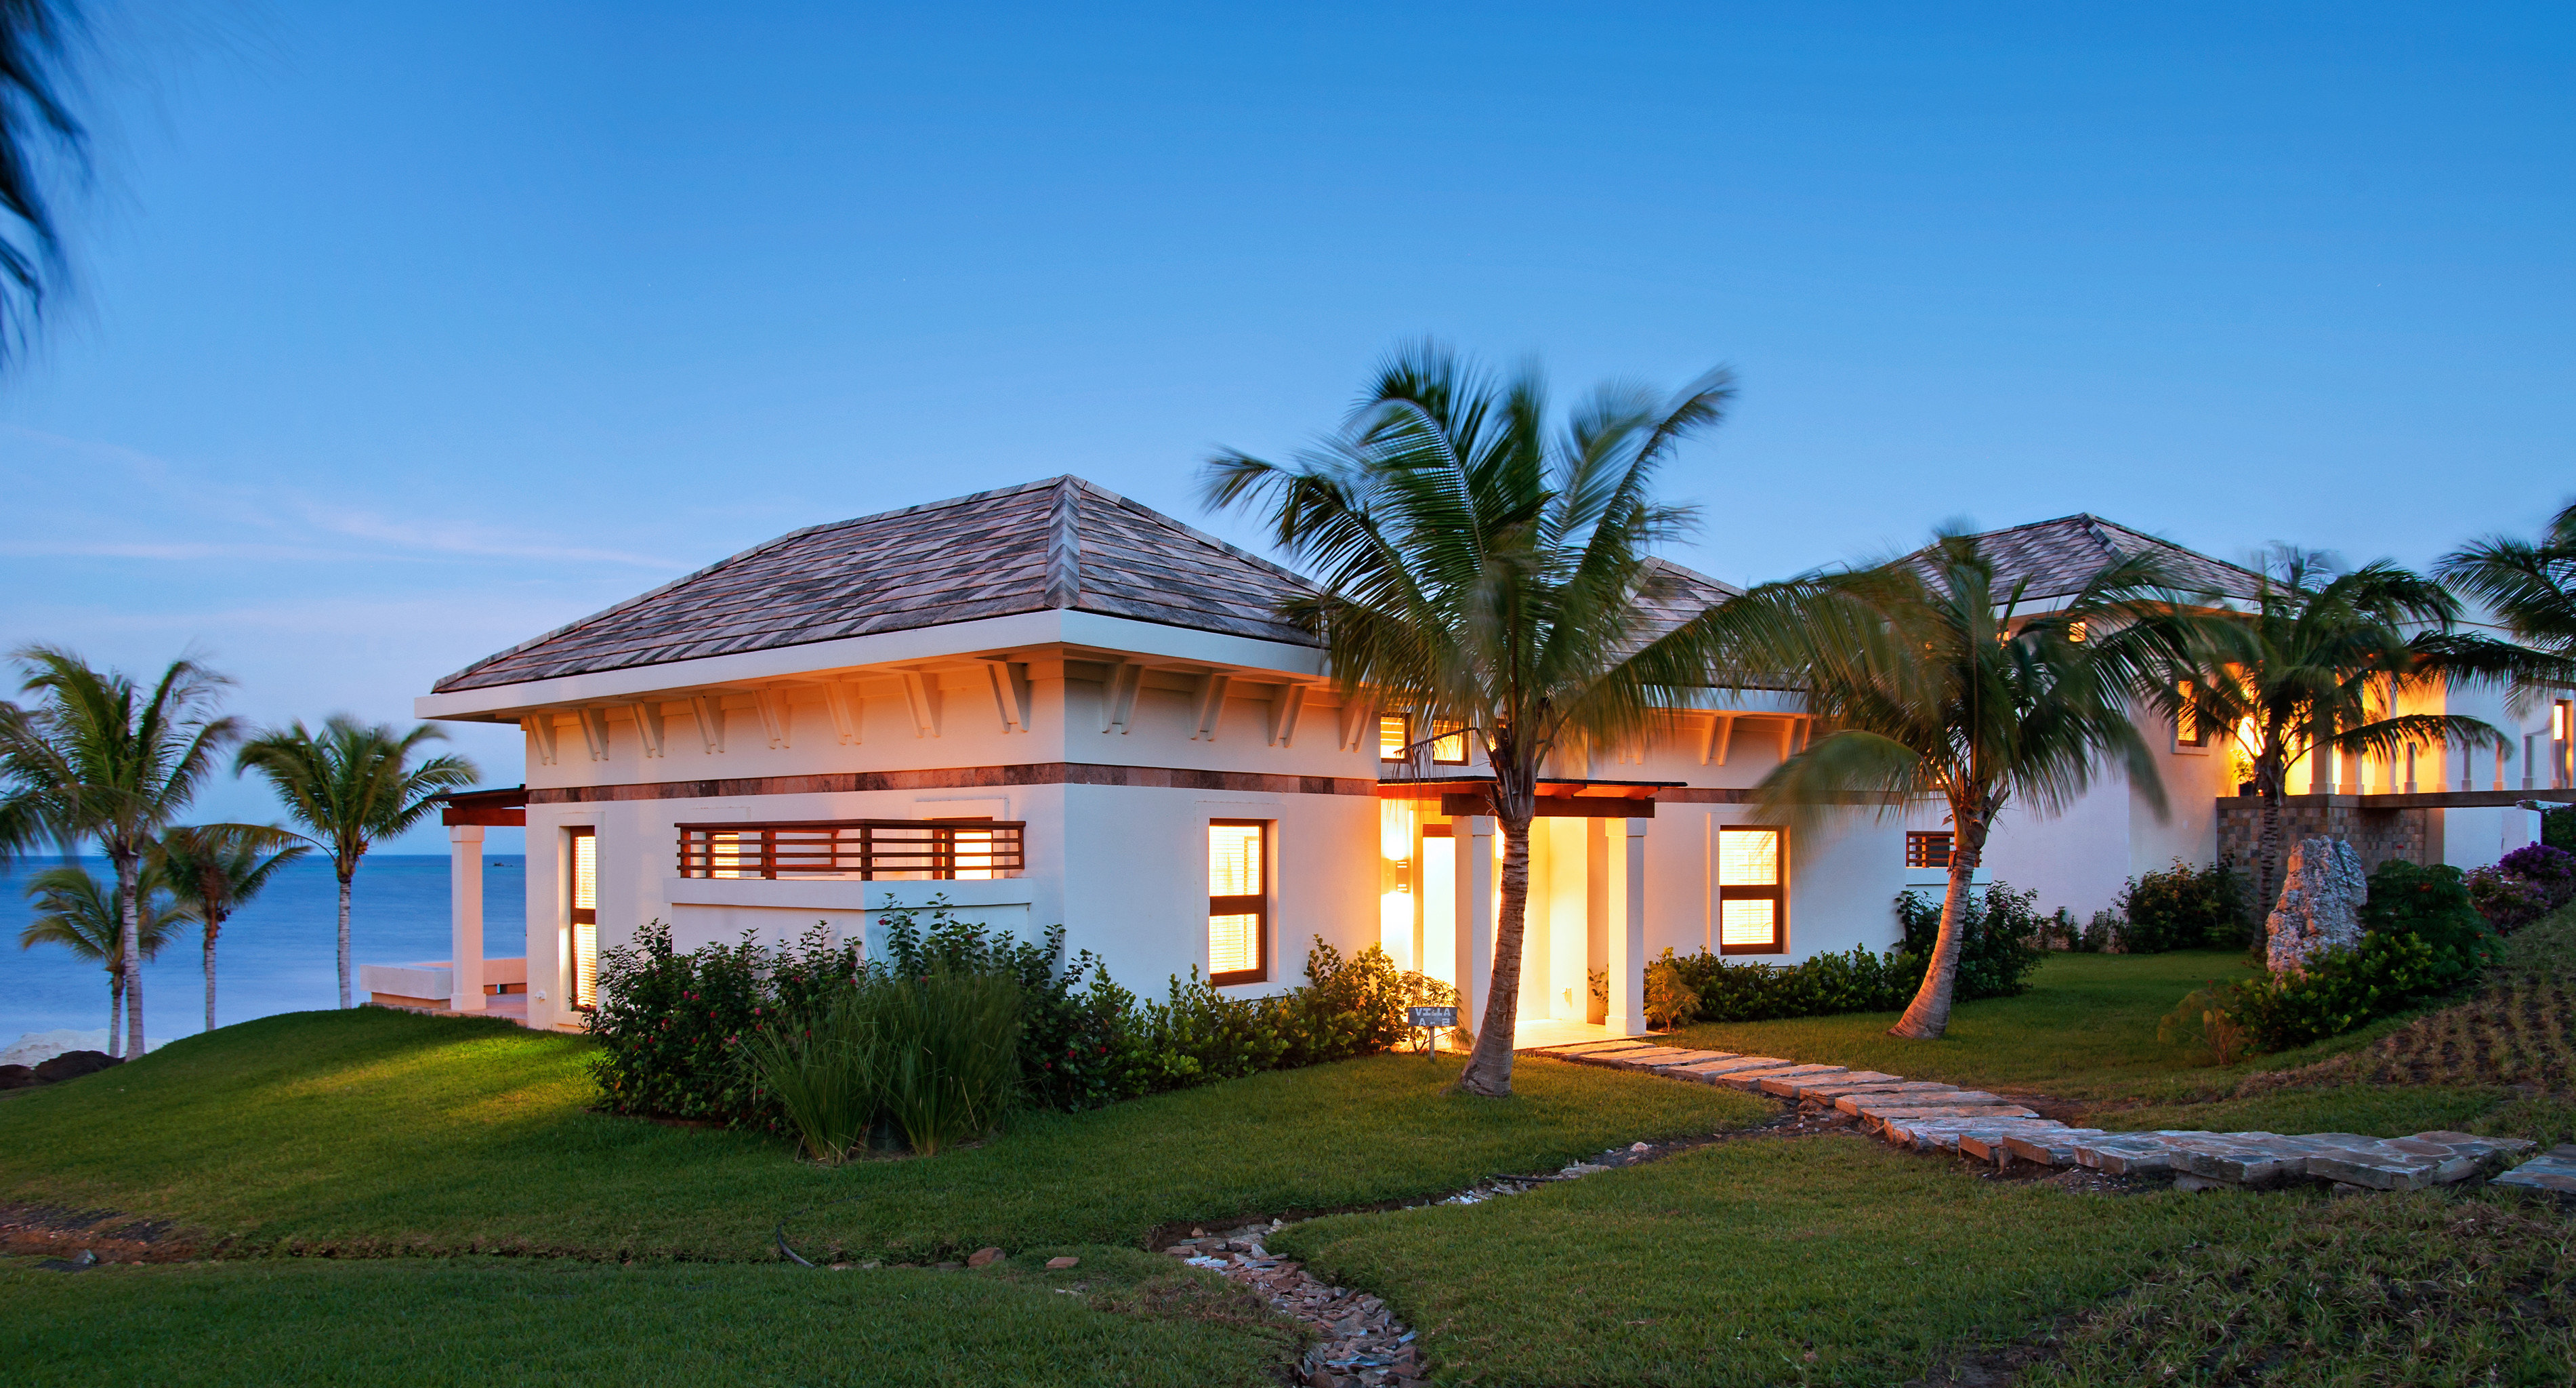 Buildings Eco Exterior Grounds Island Romance Scenic views Sunset Villa Waterfront grass sky house tree building property home Resort residential area residential mansion cottage grassy lush